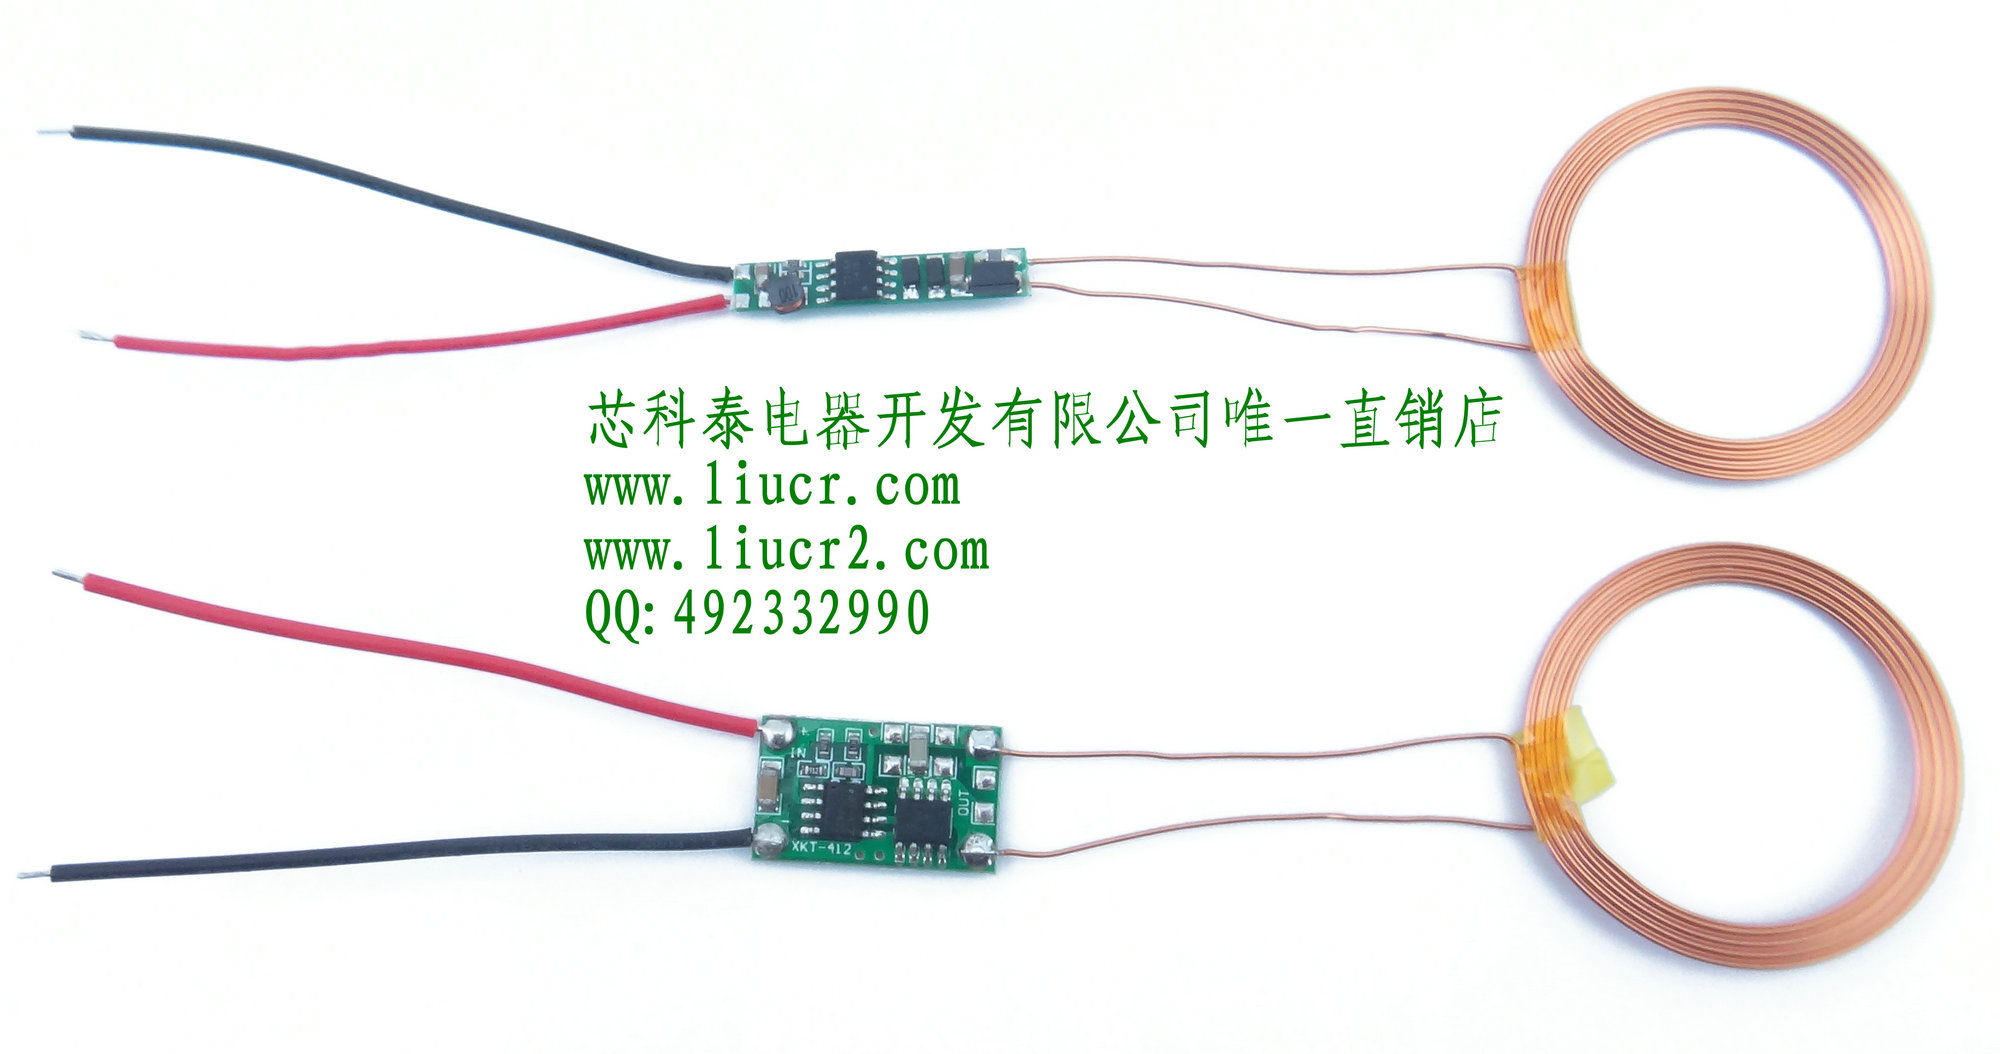 hight resolution of 38mm single layer high frequency ultra thin coil wireless charging power supply module circuit diagram xkt 412 program